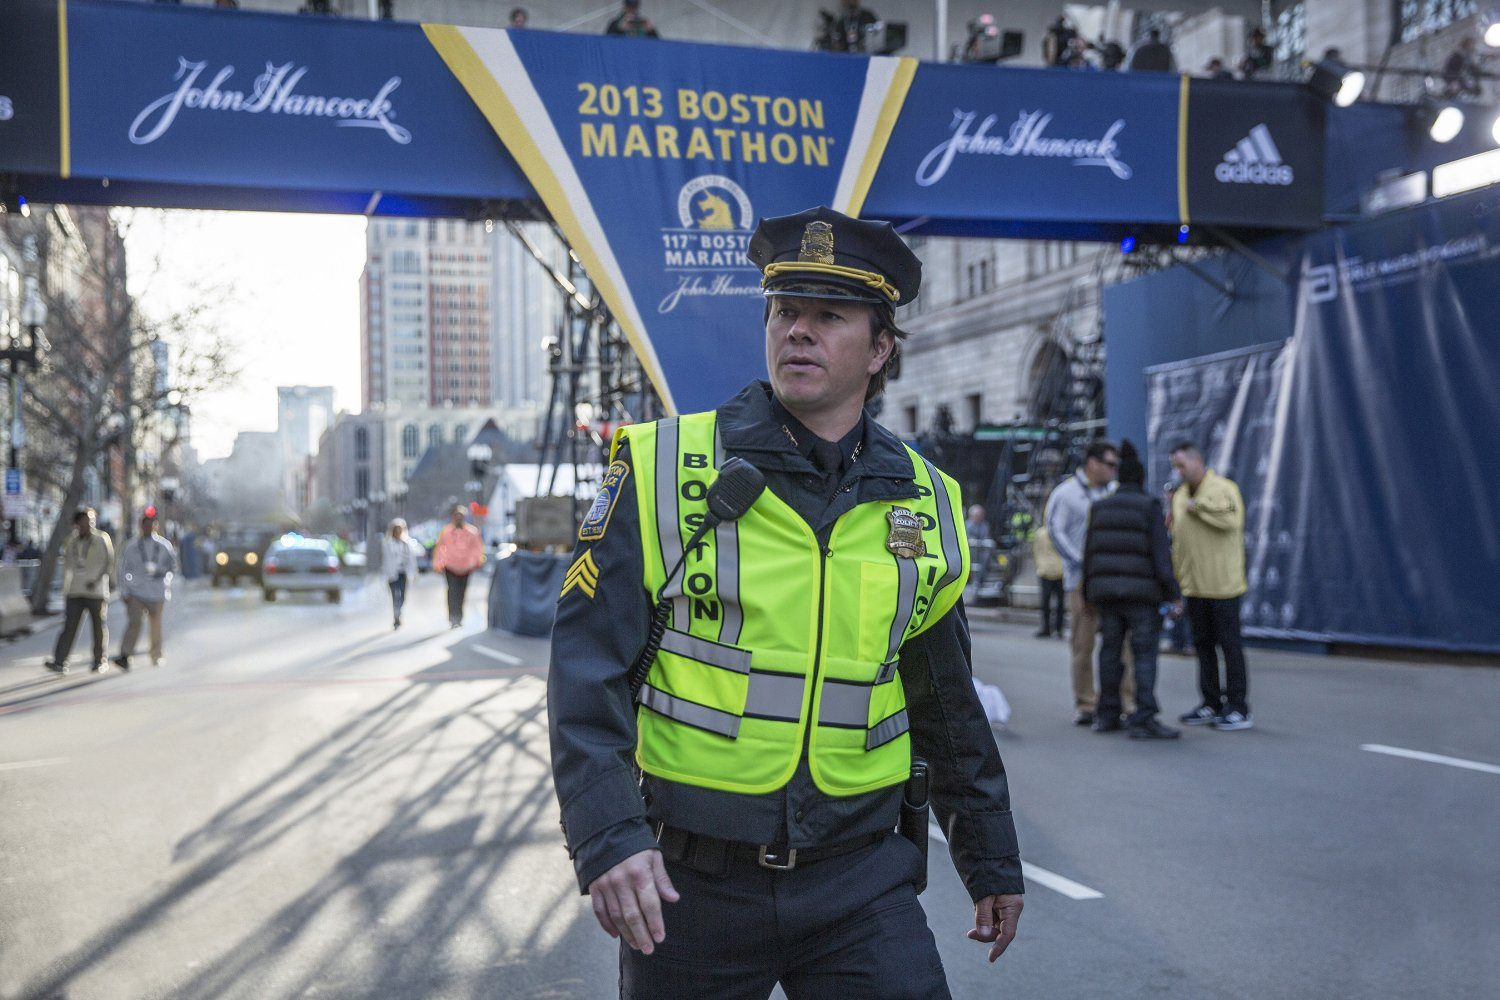 Crítica: O Dia do Atentado (Patriots Day, EUA, 2017)